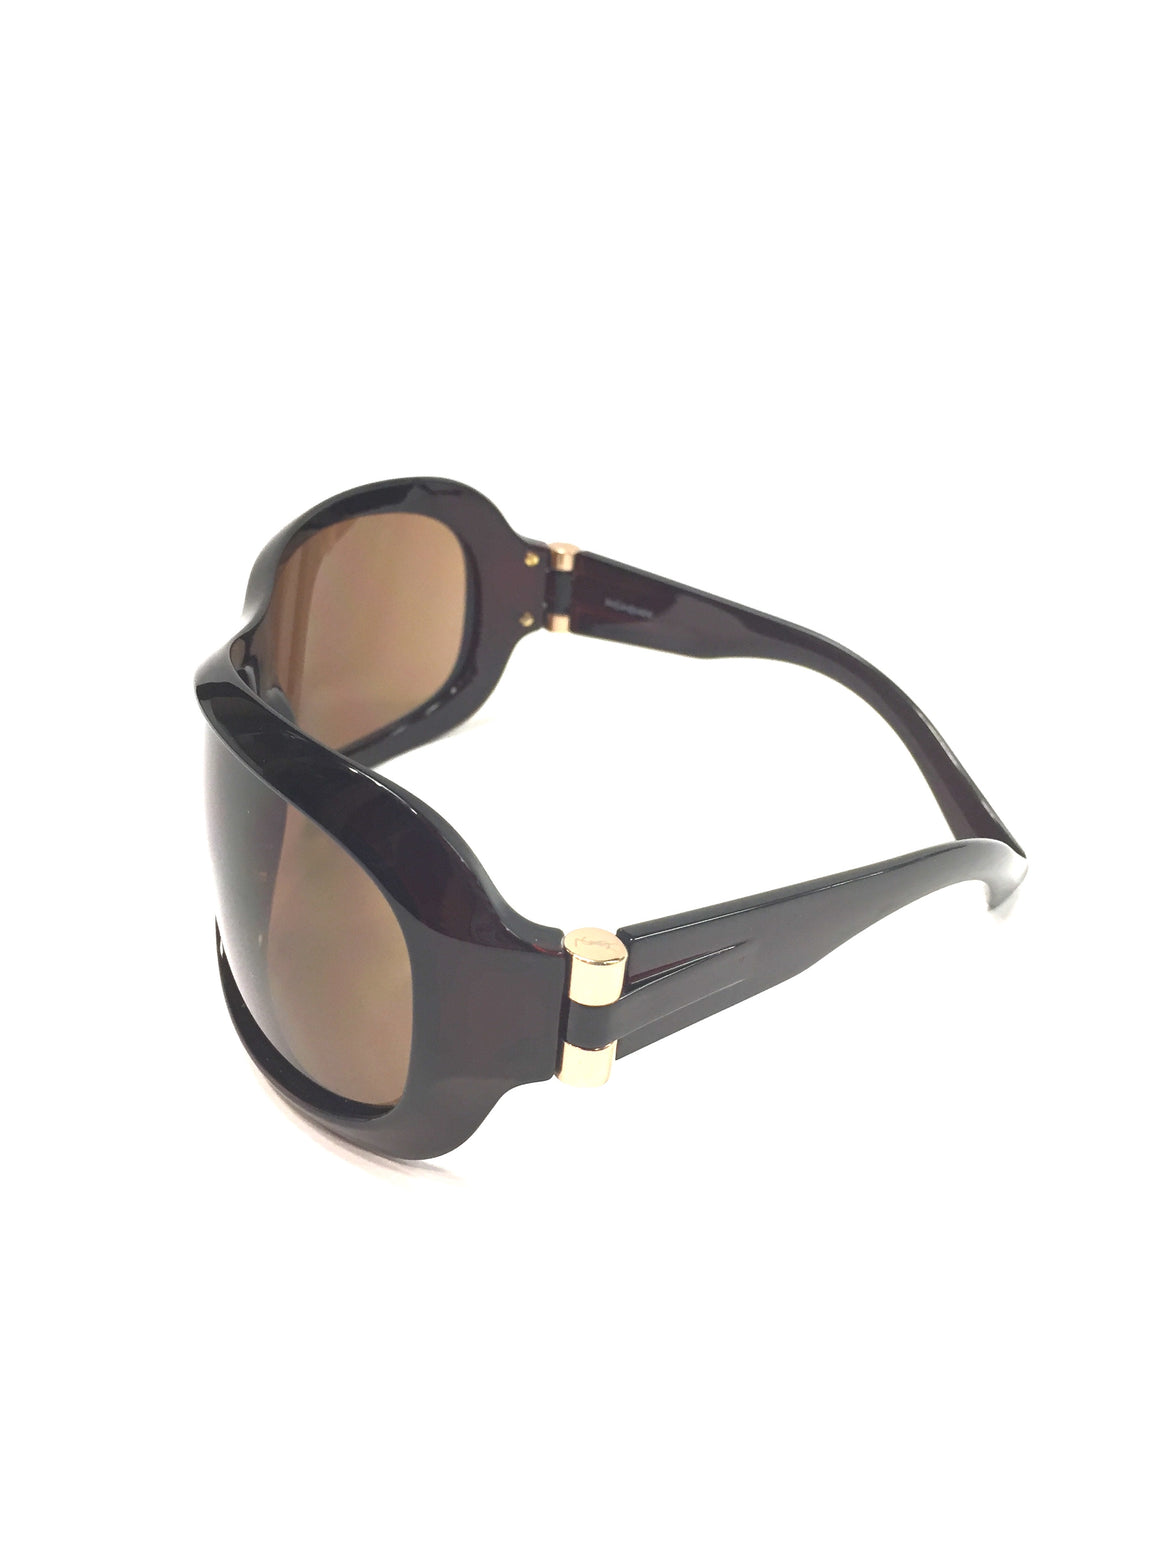 YVES ST. LAURENT-YSL-Brown Acetate Frame & Lenses Wraparound Sunglasses #6149/S